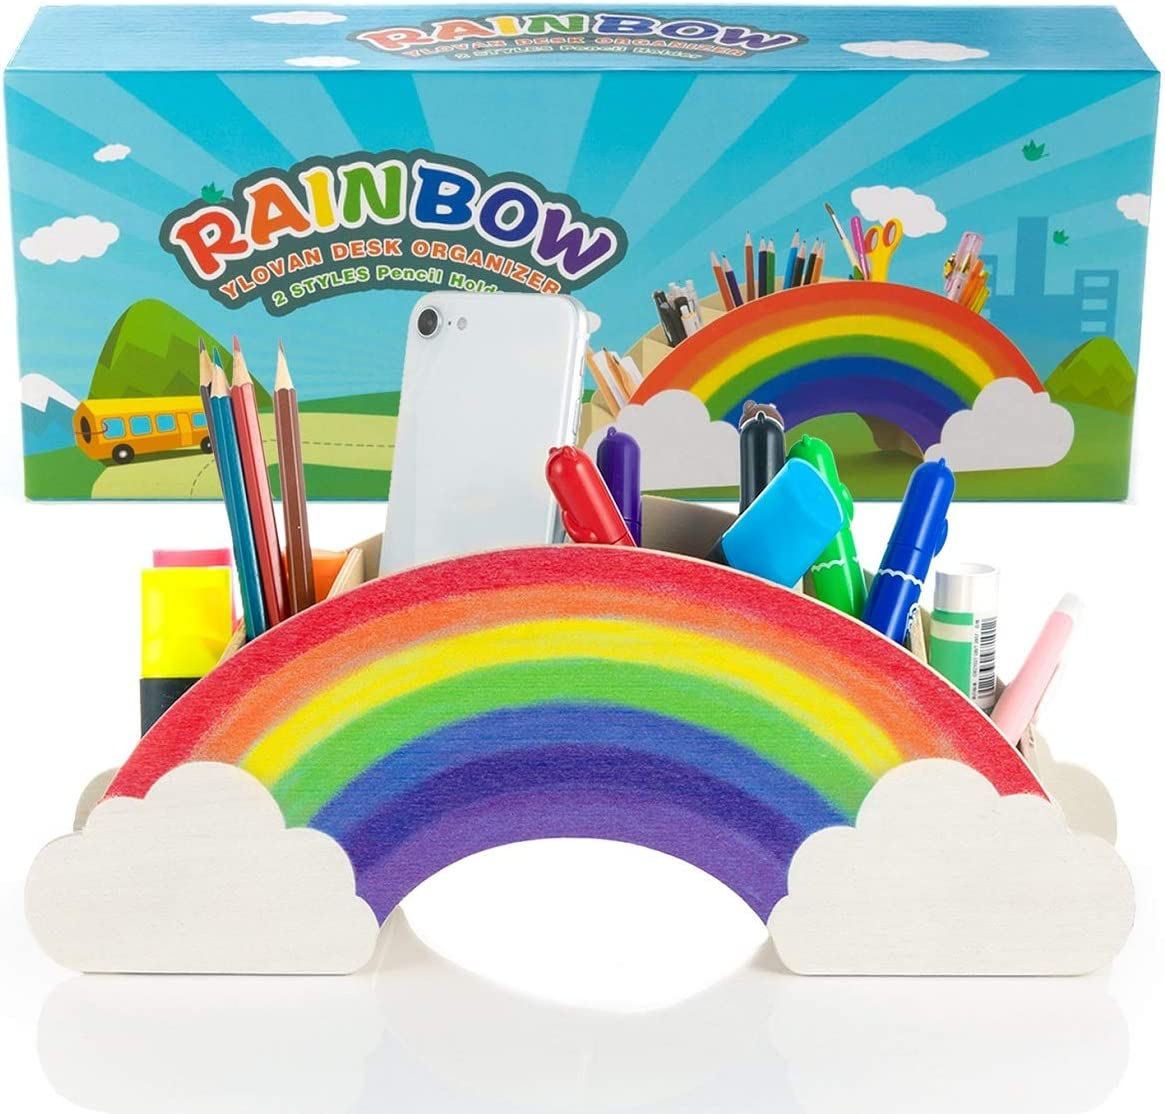 Rainbow Pen Holder Pencil Caddy, Wooden Desk Organizer for Kids Art Supply with Gift Box, School Desktop Decor for Marker Crayon, Office Supplies Stationary Organization Rainbow Accessories for Makeup